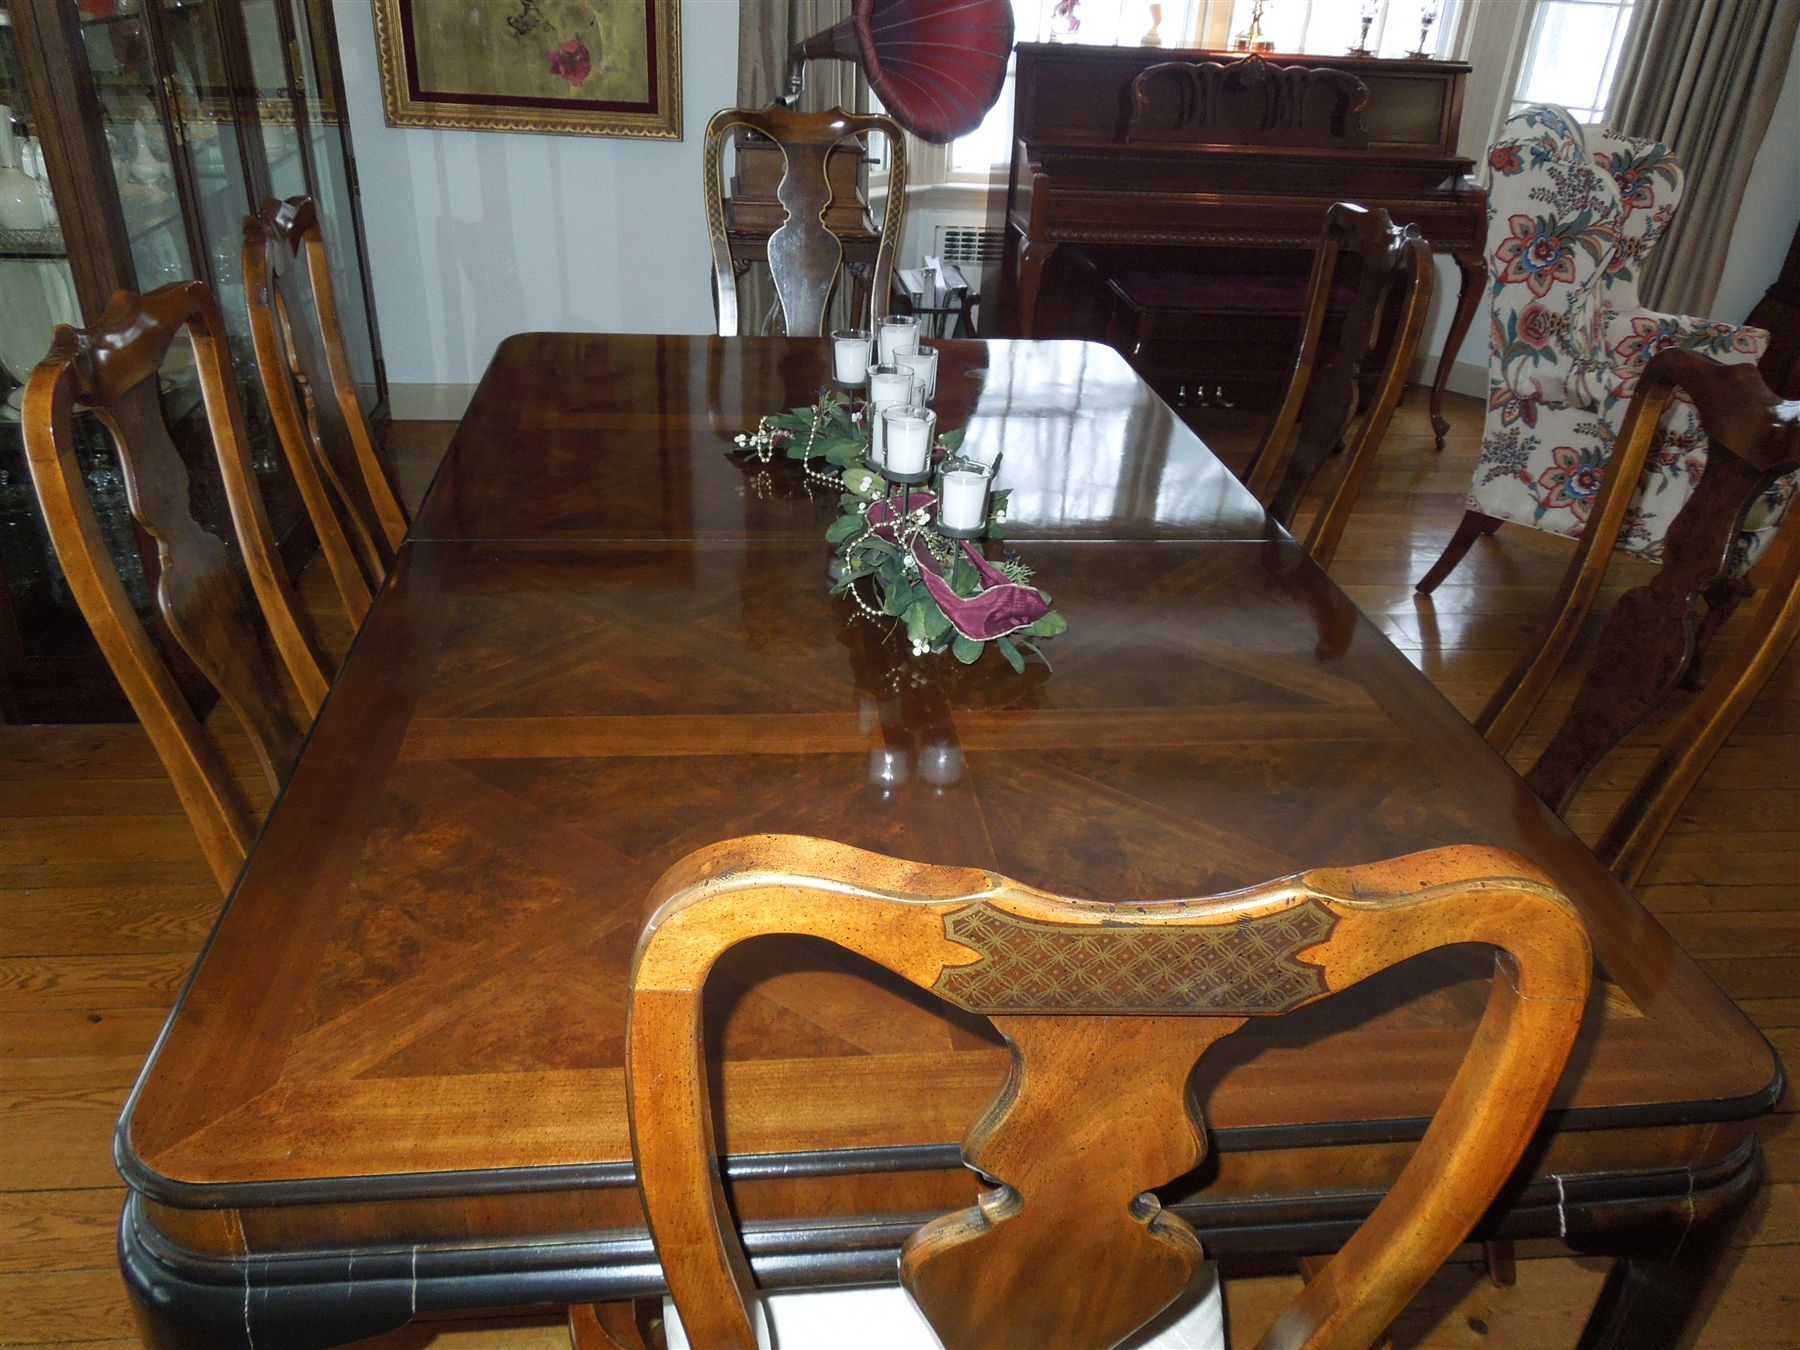 Heritage Dining Room Furniture Heritage Dining Room Furniture  Modern Wood Furniture Check More